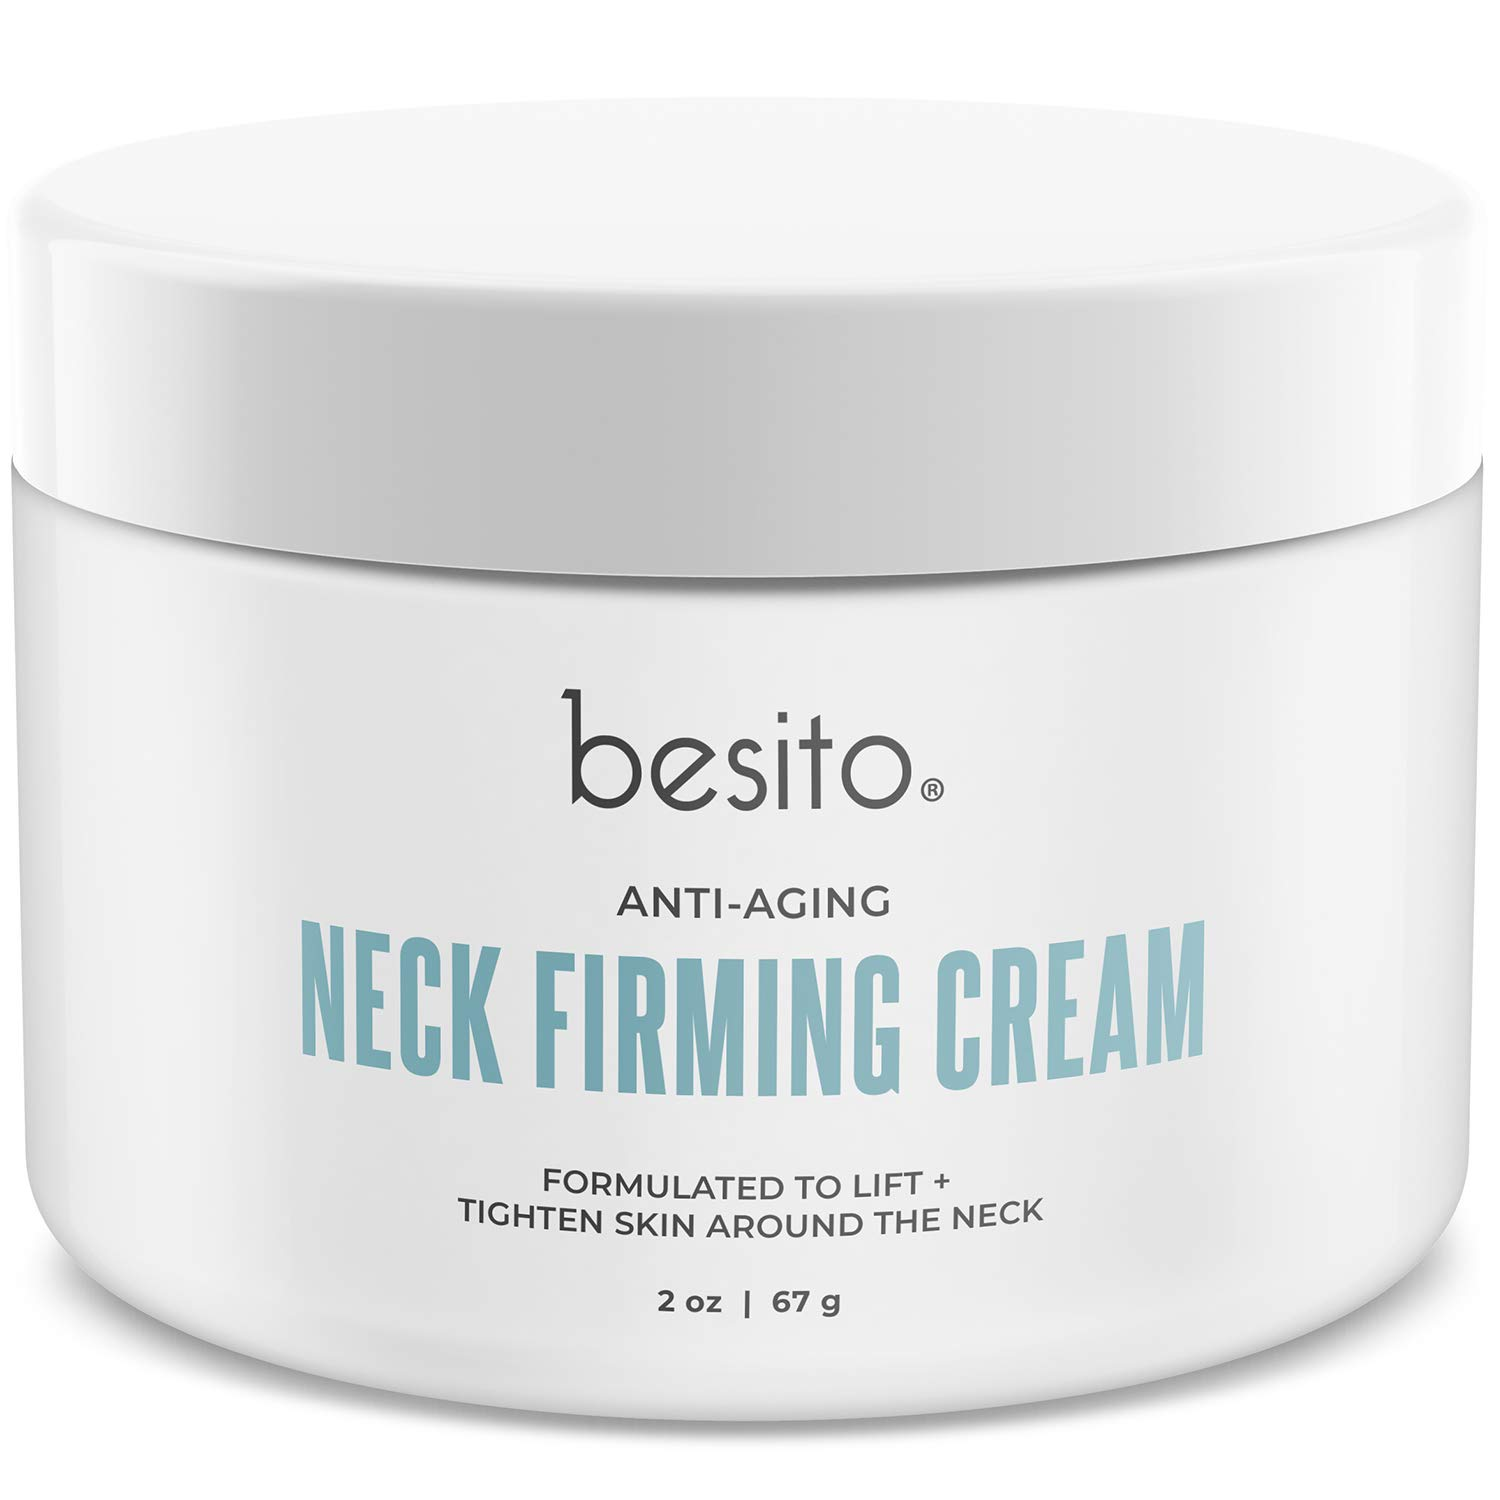 besito Advanced Neck Cream with Peptides, Vitamin E, Shea Butter, and More. Anti Aging Neck Firming Cream and Moisturizer Helps Reduce Wrinkles, Fine Lines and Age Spots.: Beauty